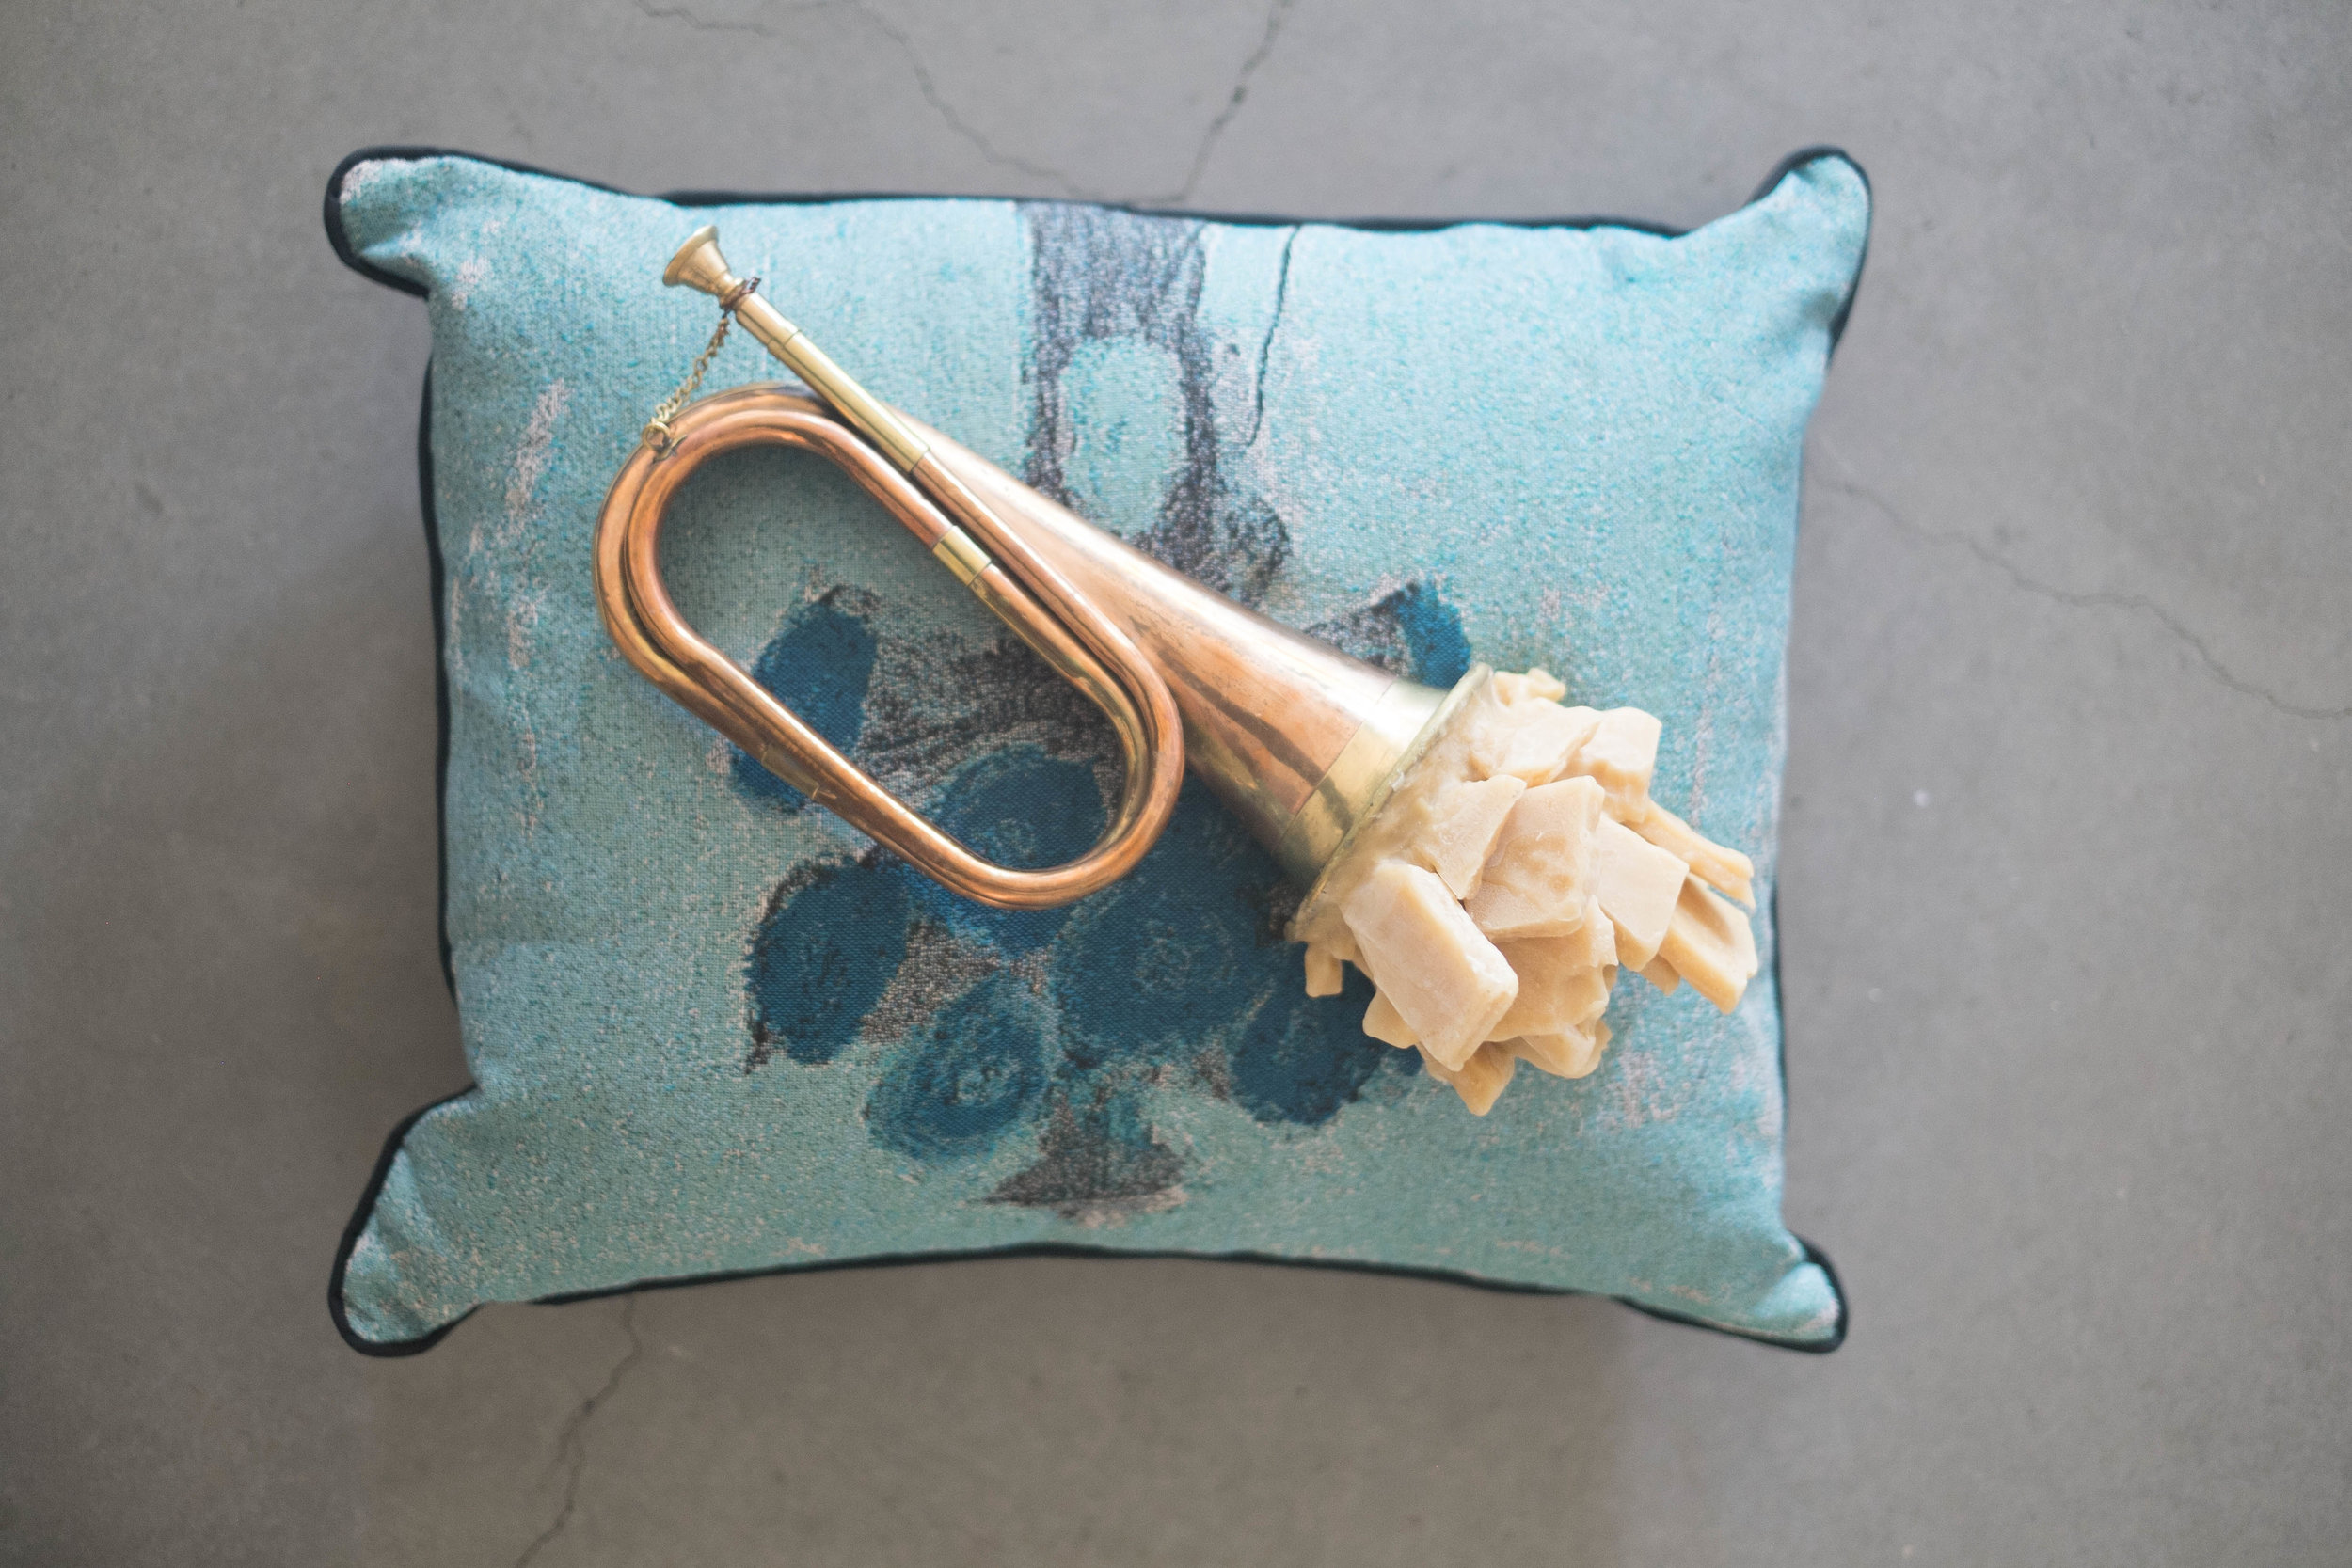 Lest They Listen , 2019, Miniature bugle, cotton Jacquard tapestry pillow, beeswax